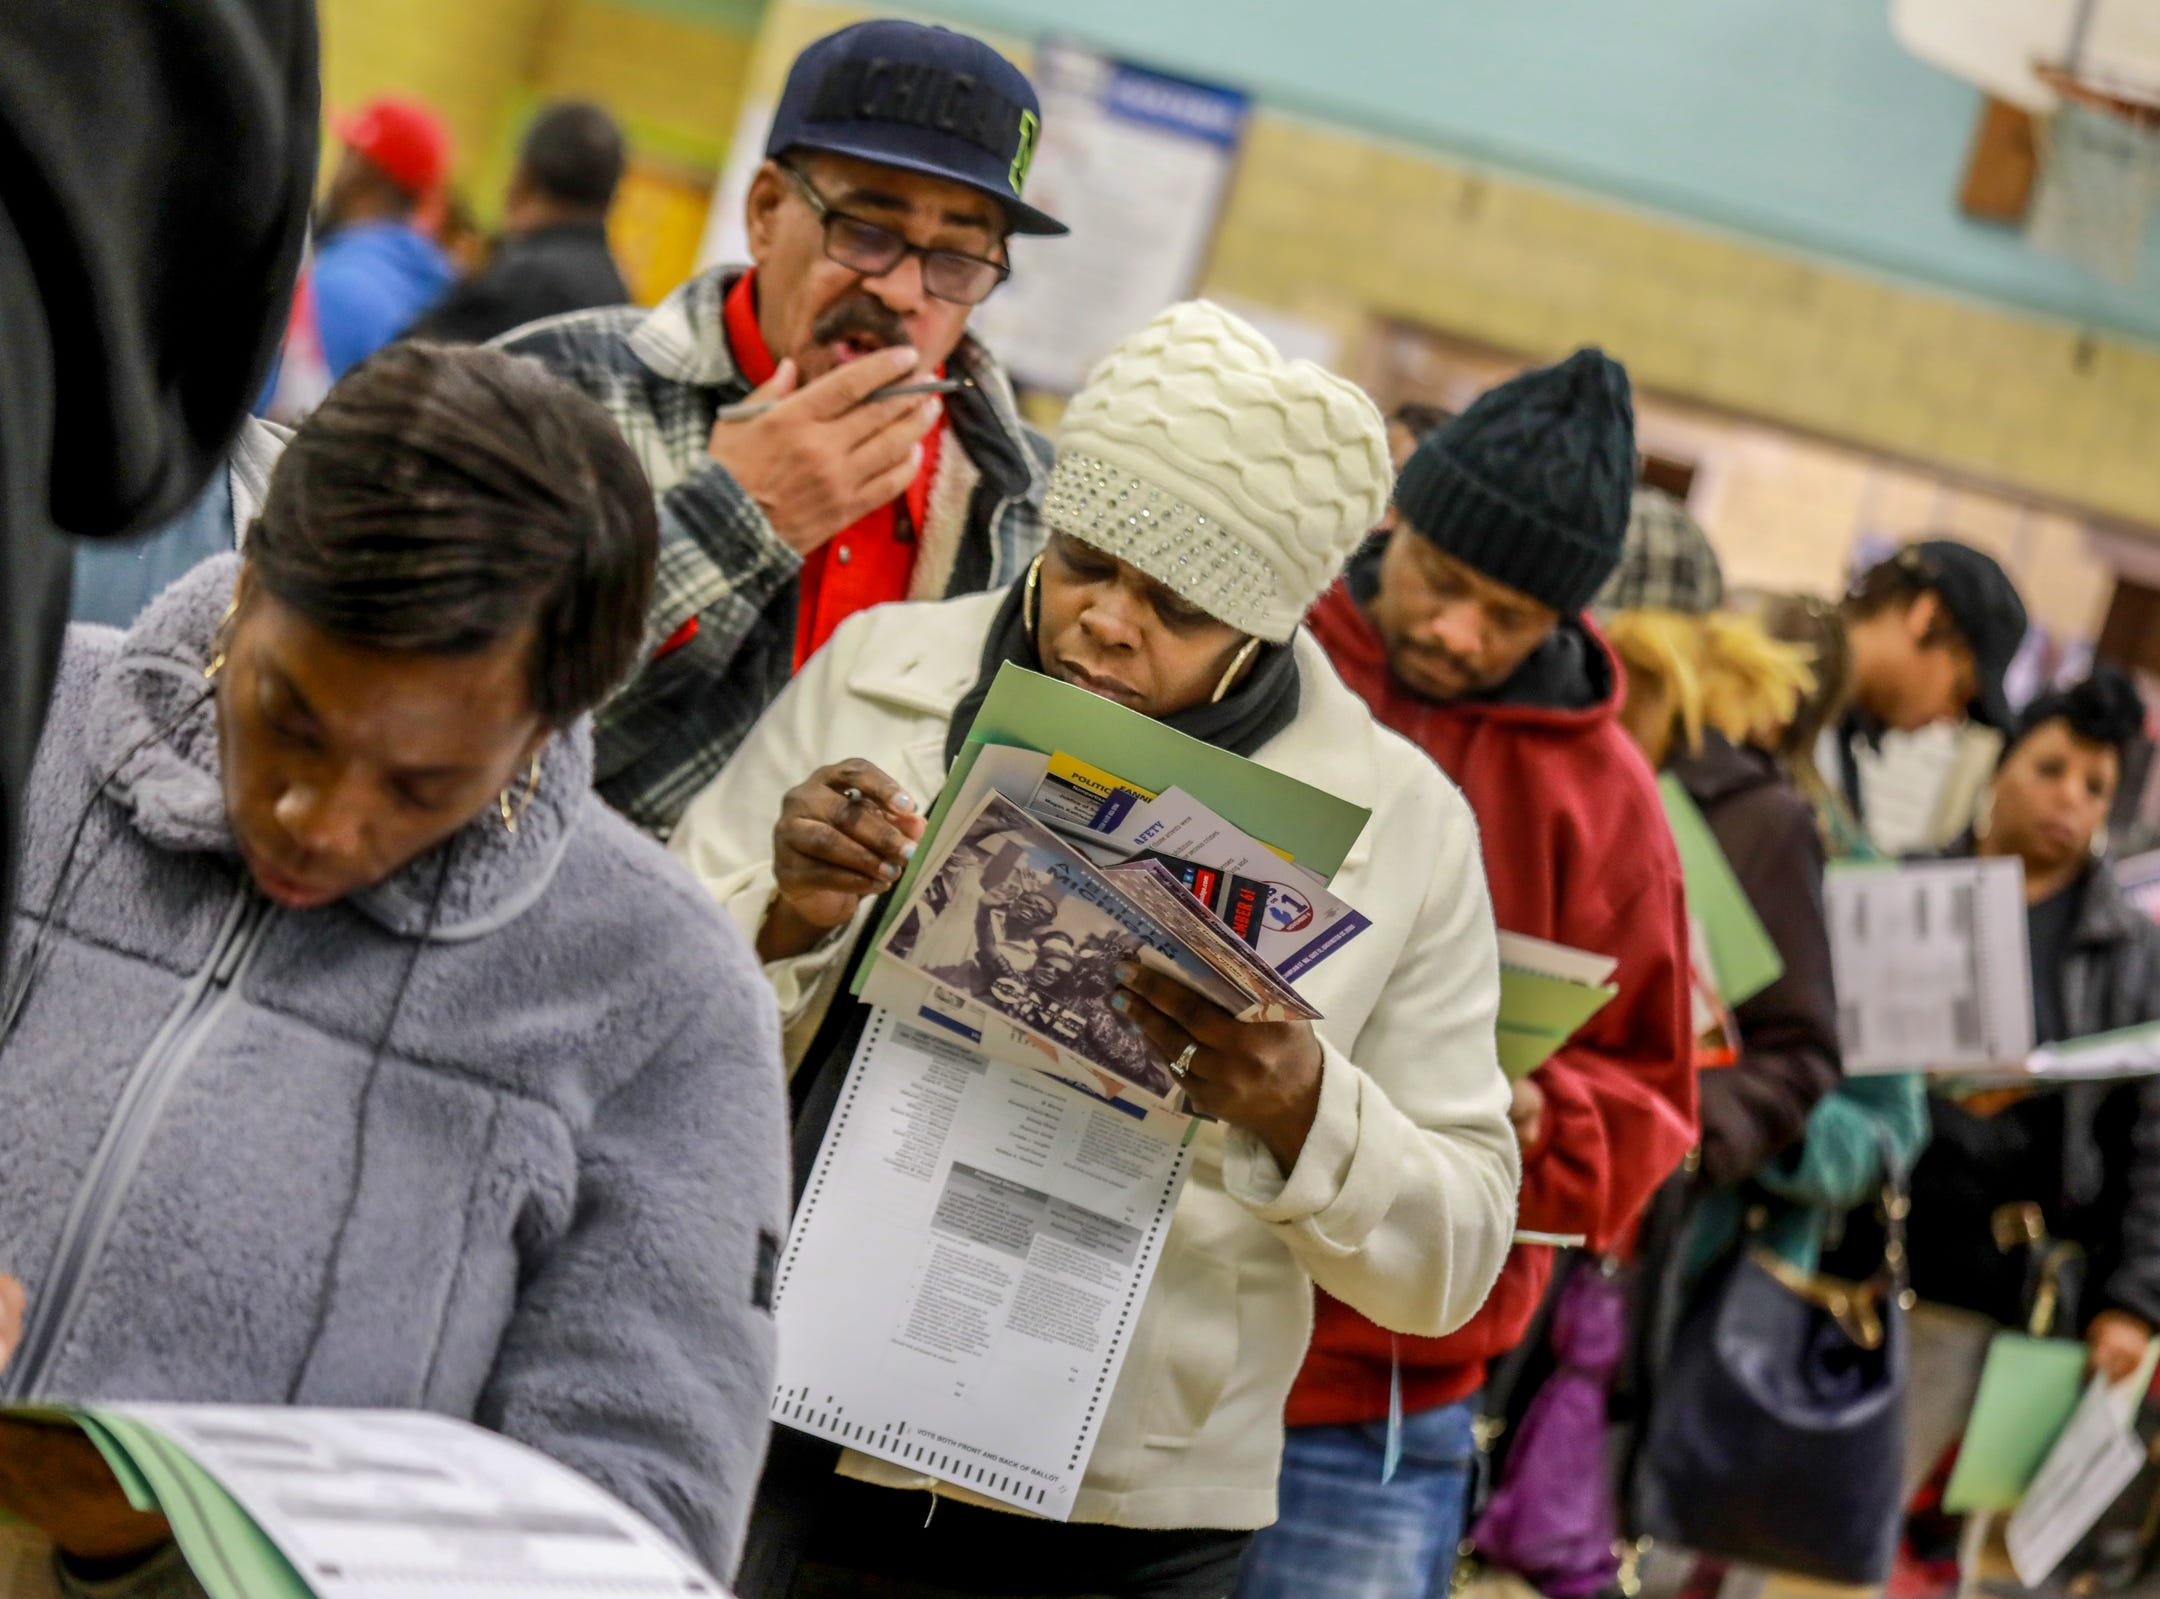 Michigan voter turnout highest in nearly 50 years for midterm elections